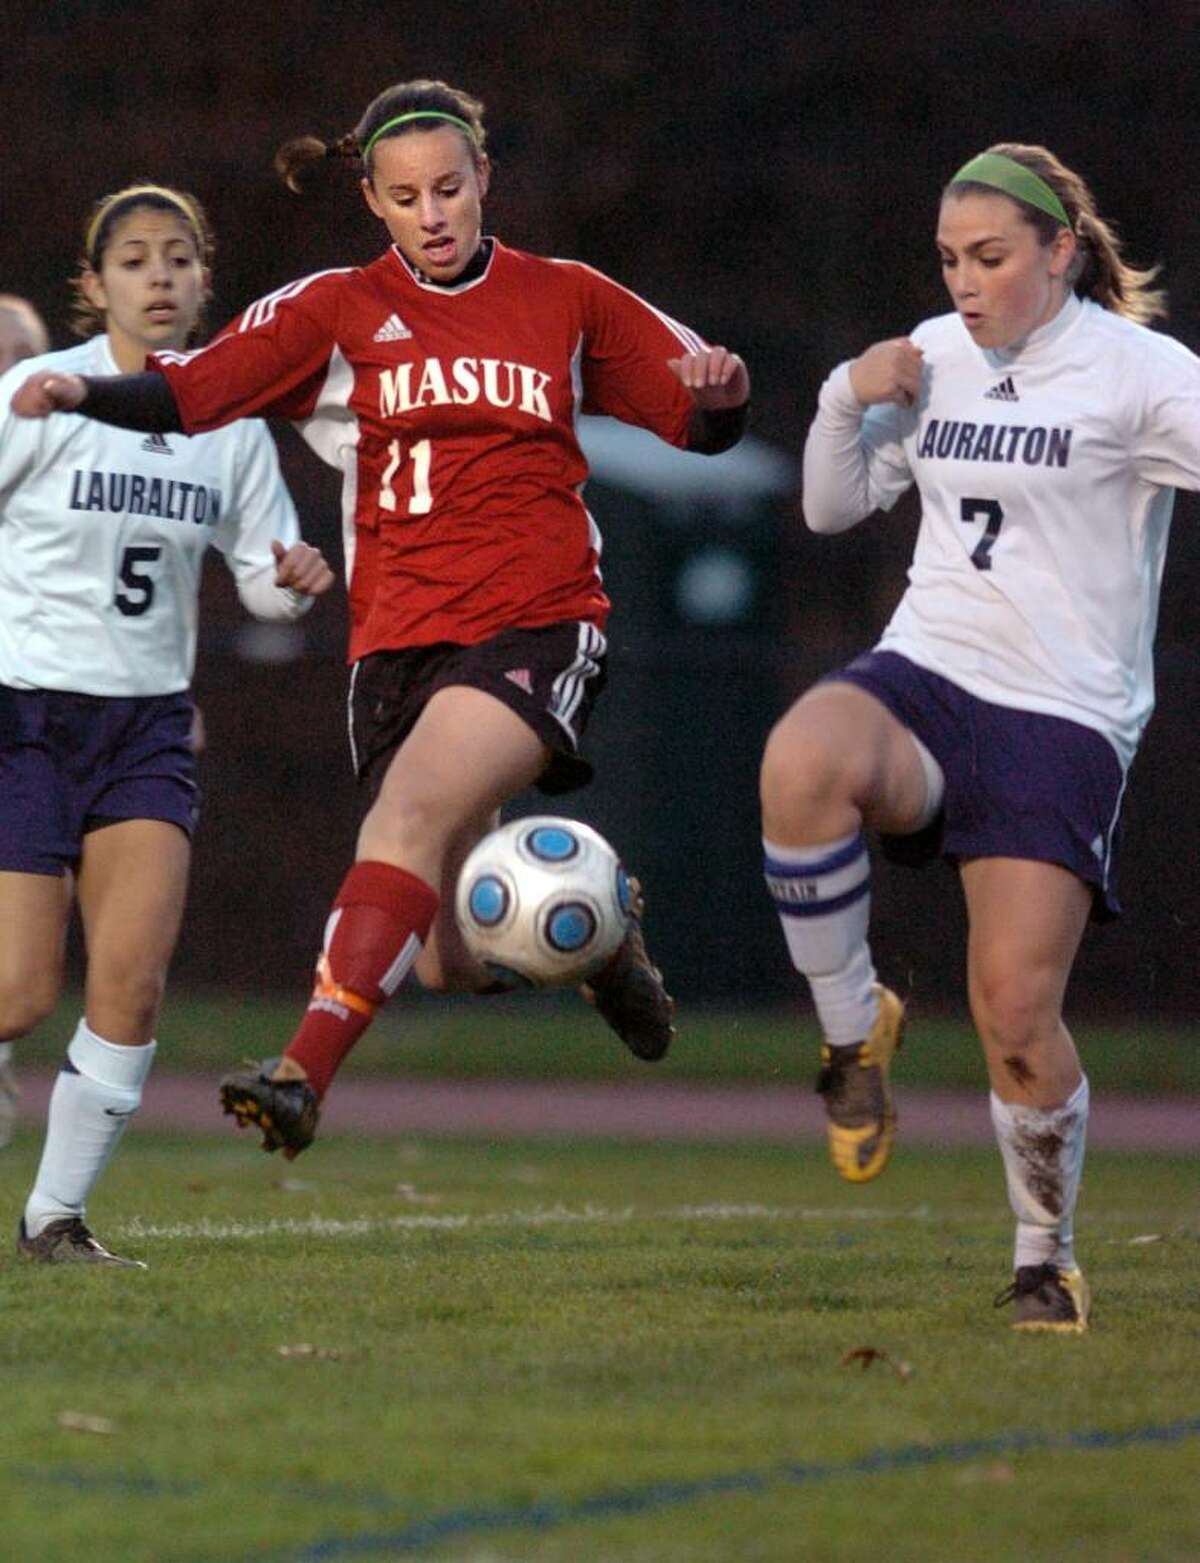 Masuk's Jackie McSally and Lauralton Hall's Taylor Healy go after the ball during the first half of Thursday night's South West Conference Girls Soccer Championship at Joel Barlow High School.